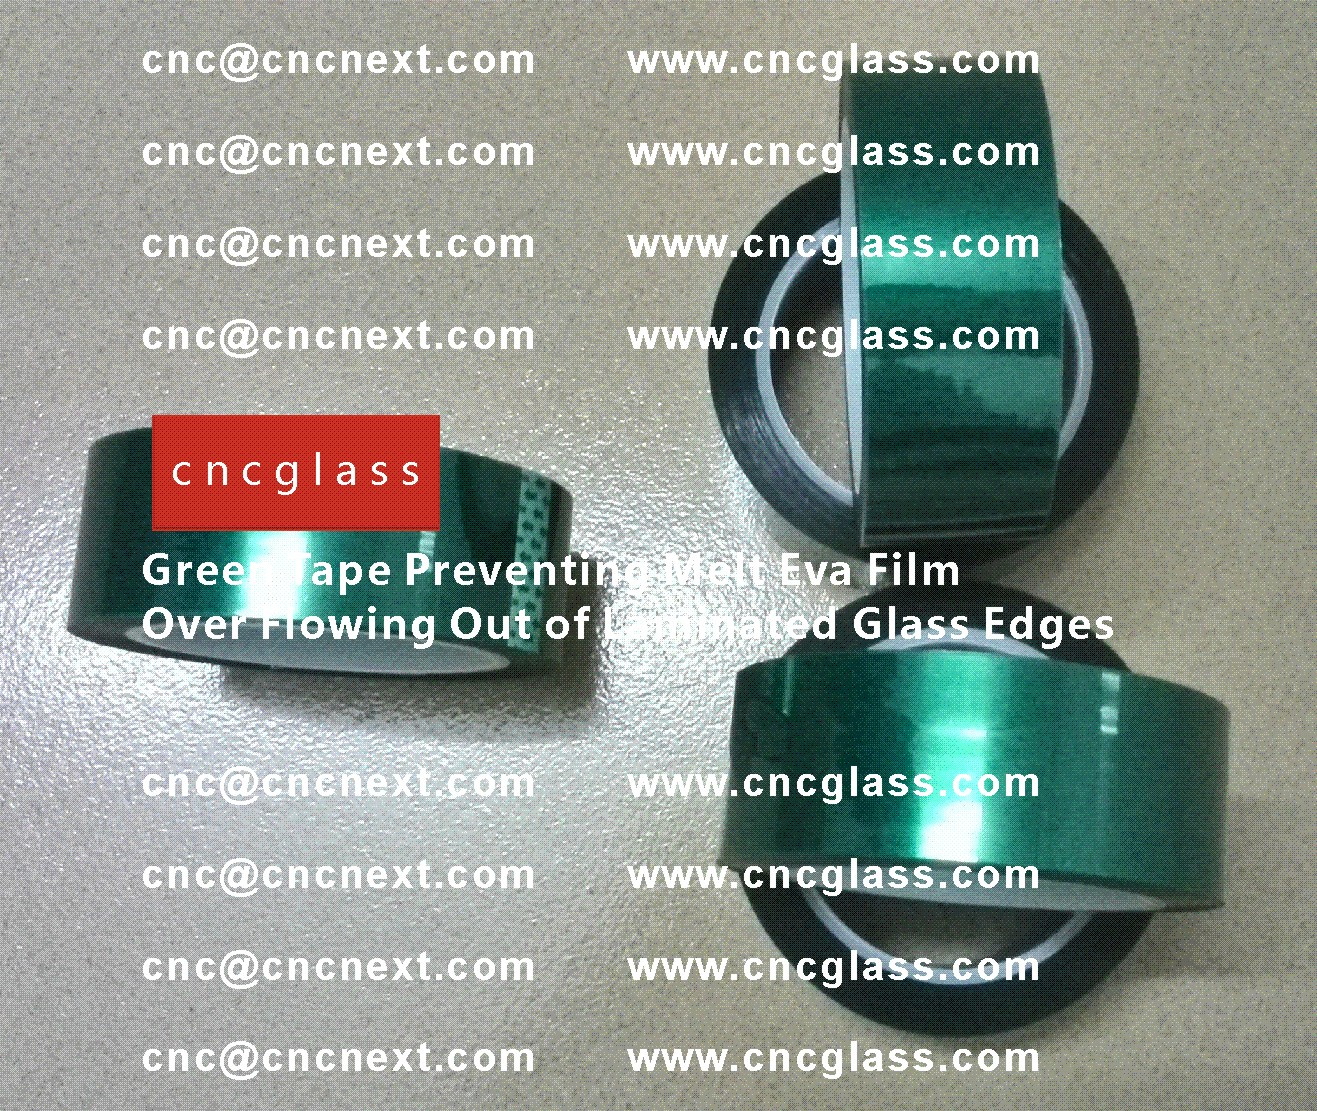 004 Green Tape Preventing Melt Eva Film Over Flowing Out of Laminated Glass Edges